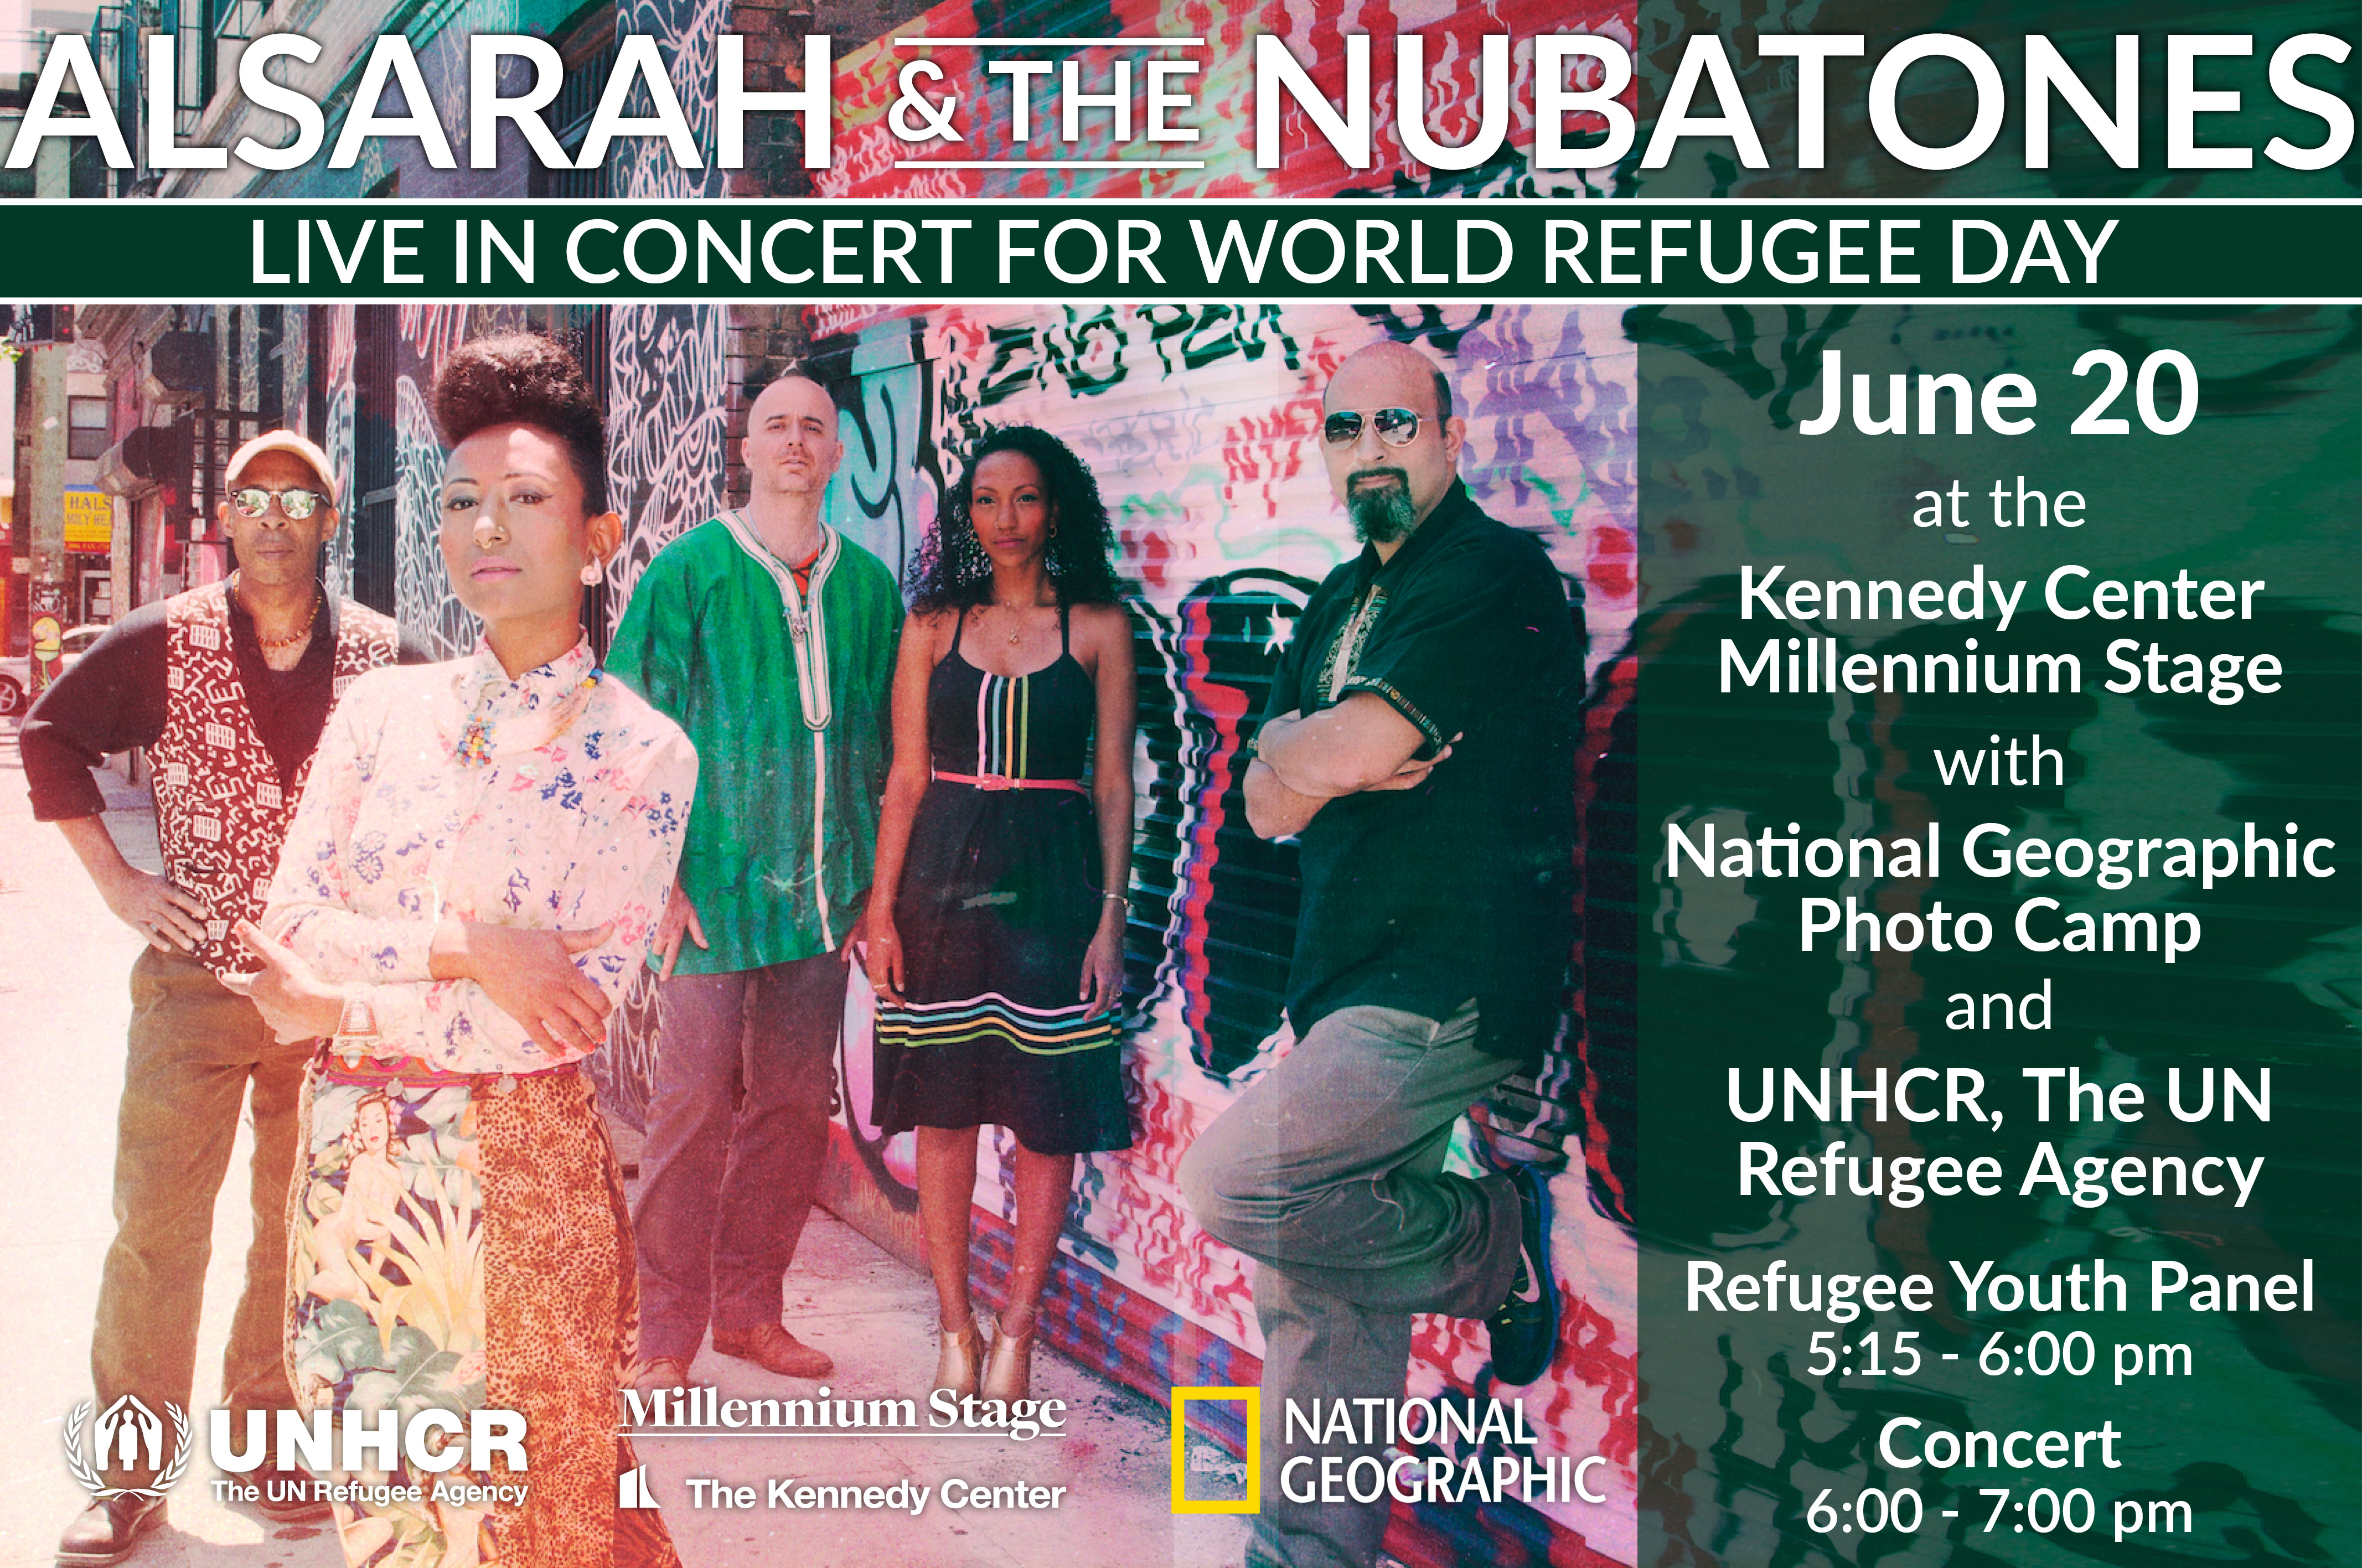 kennedy center event graphic for world refugee day 2019